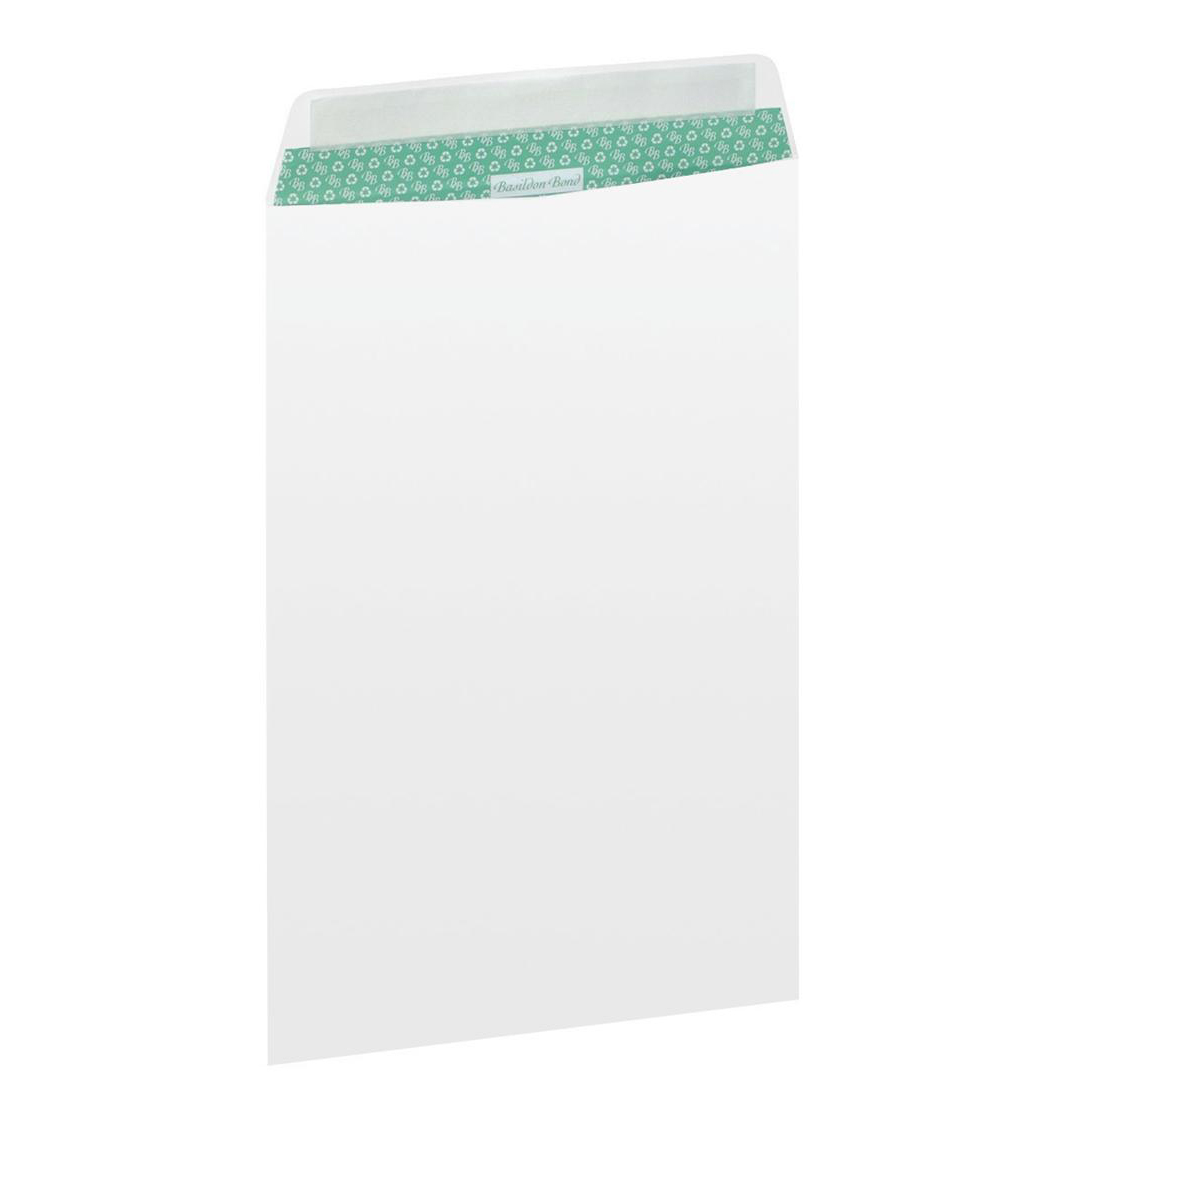 C4 Basildon Bond Envelopes FSC Recycled Pocket Peel & Seal Wdw 120gsm C4 324x229mm Whte Ref B80285 Pack 50